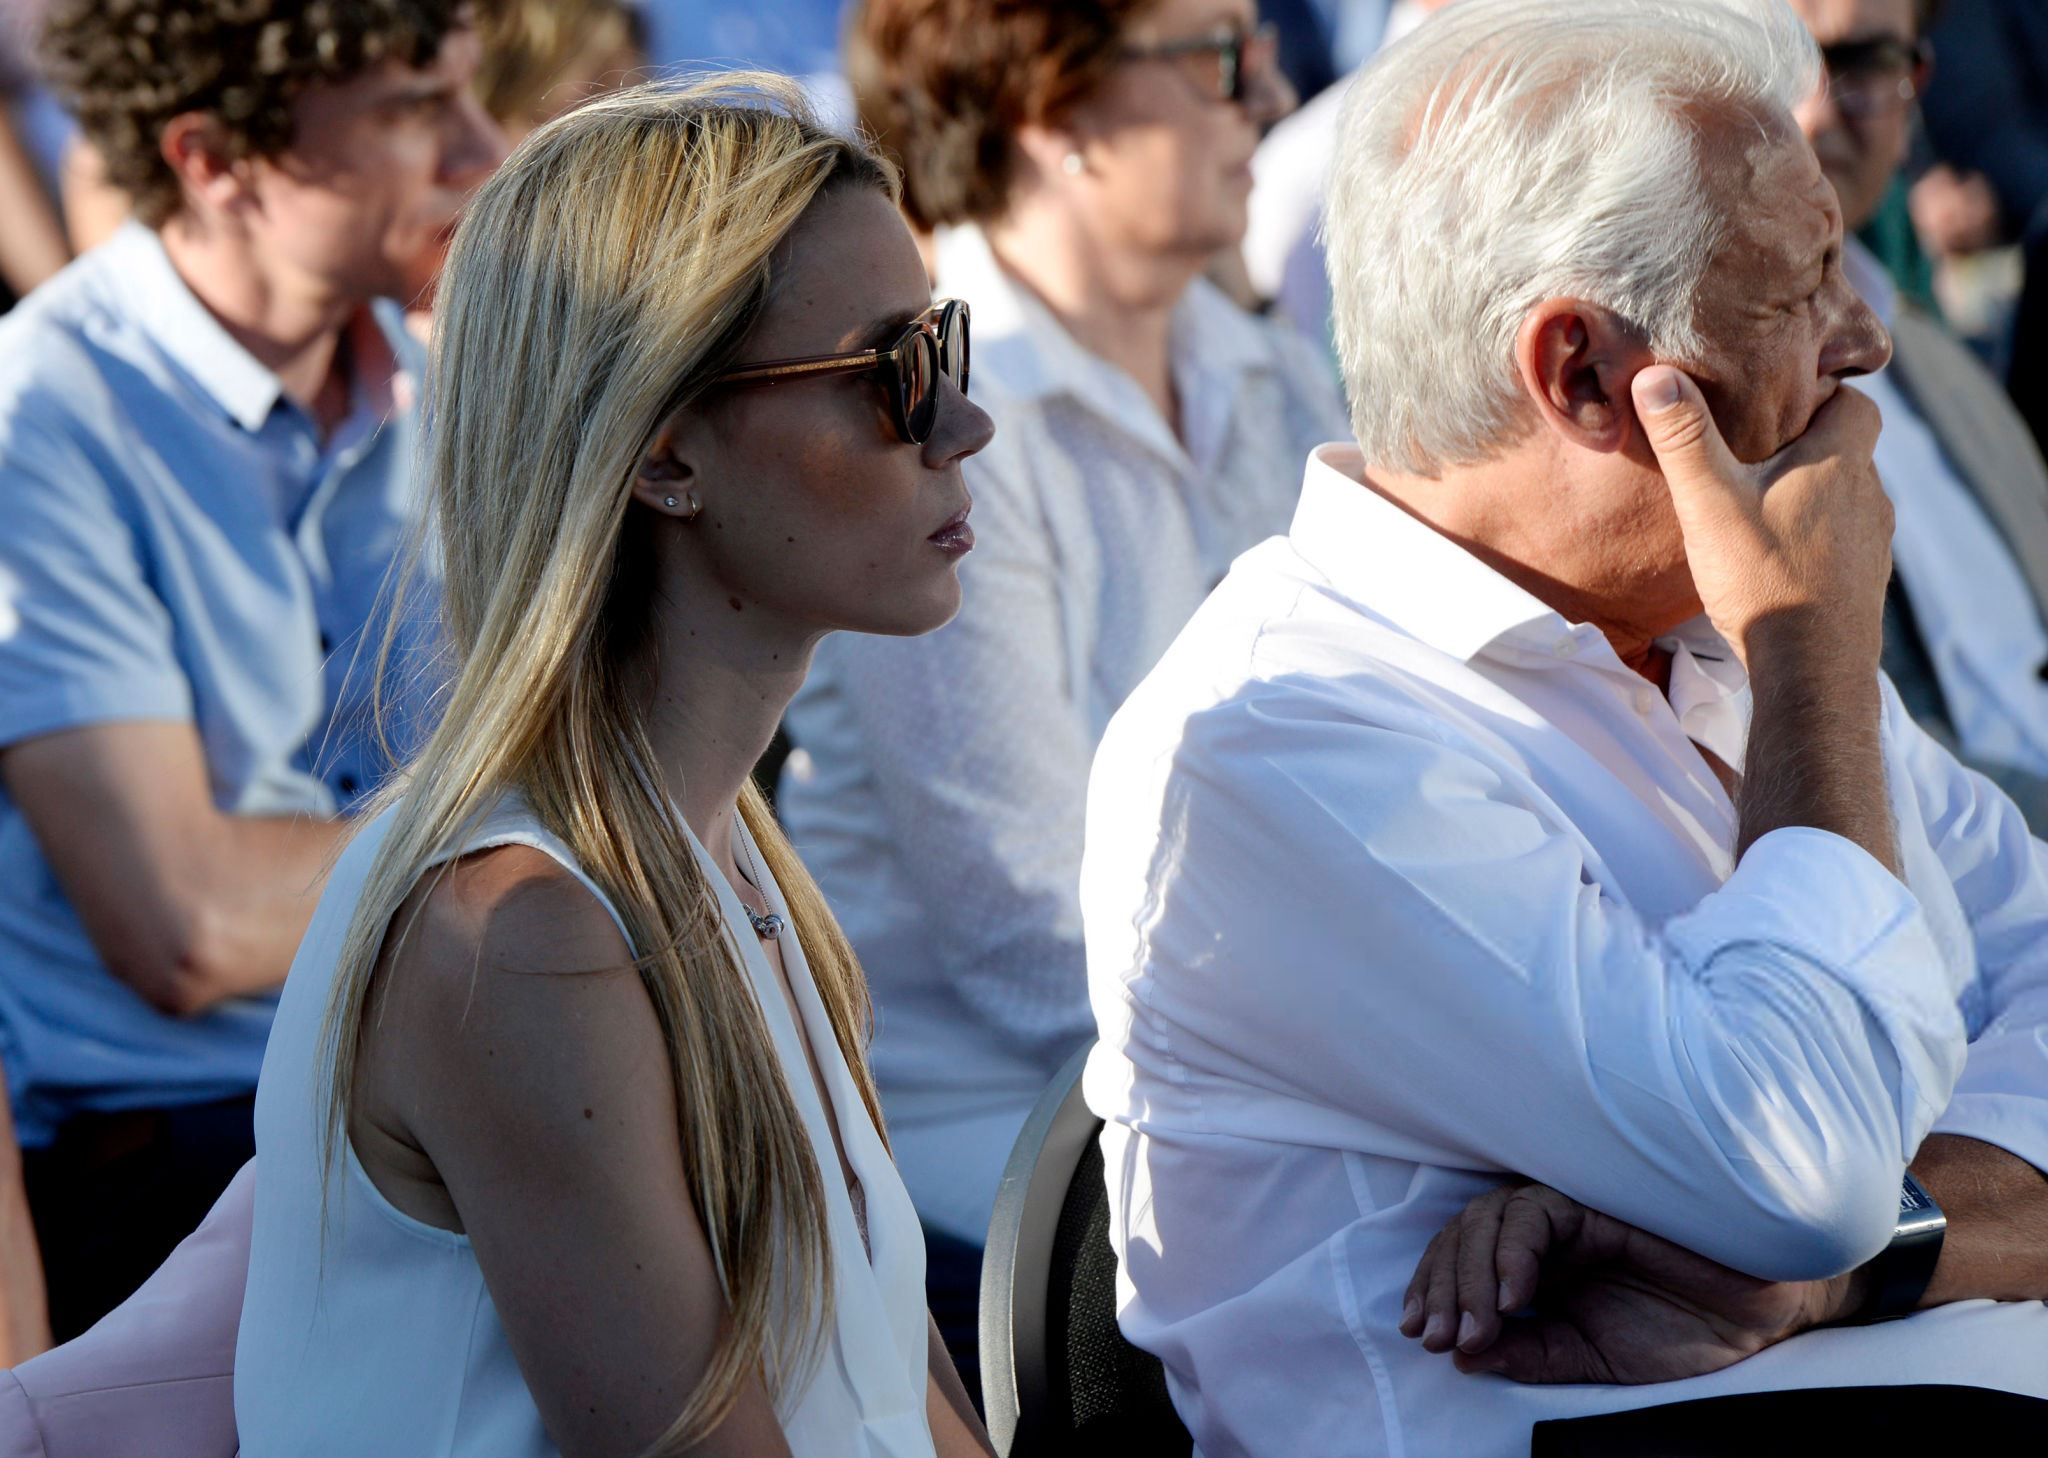 Rafael Nadal Sister And Father Attend Graduation Of Students At His Academy In Mallorca 2018 Rafael Nadal Fans